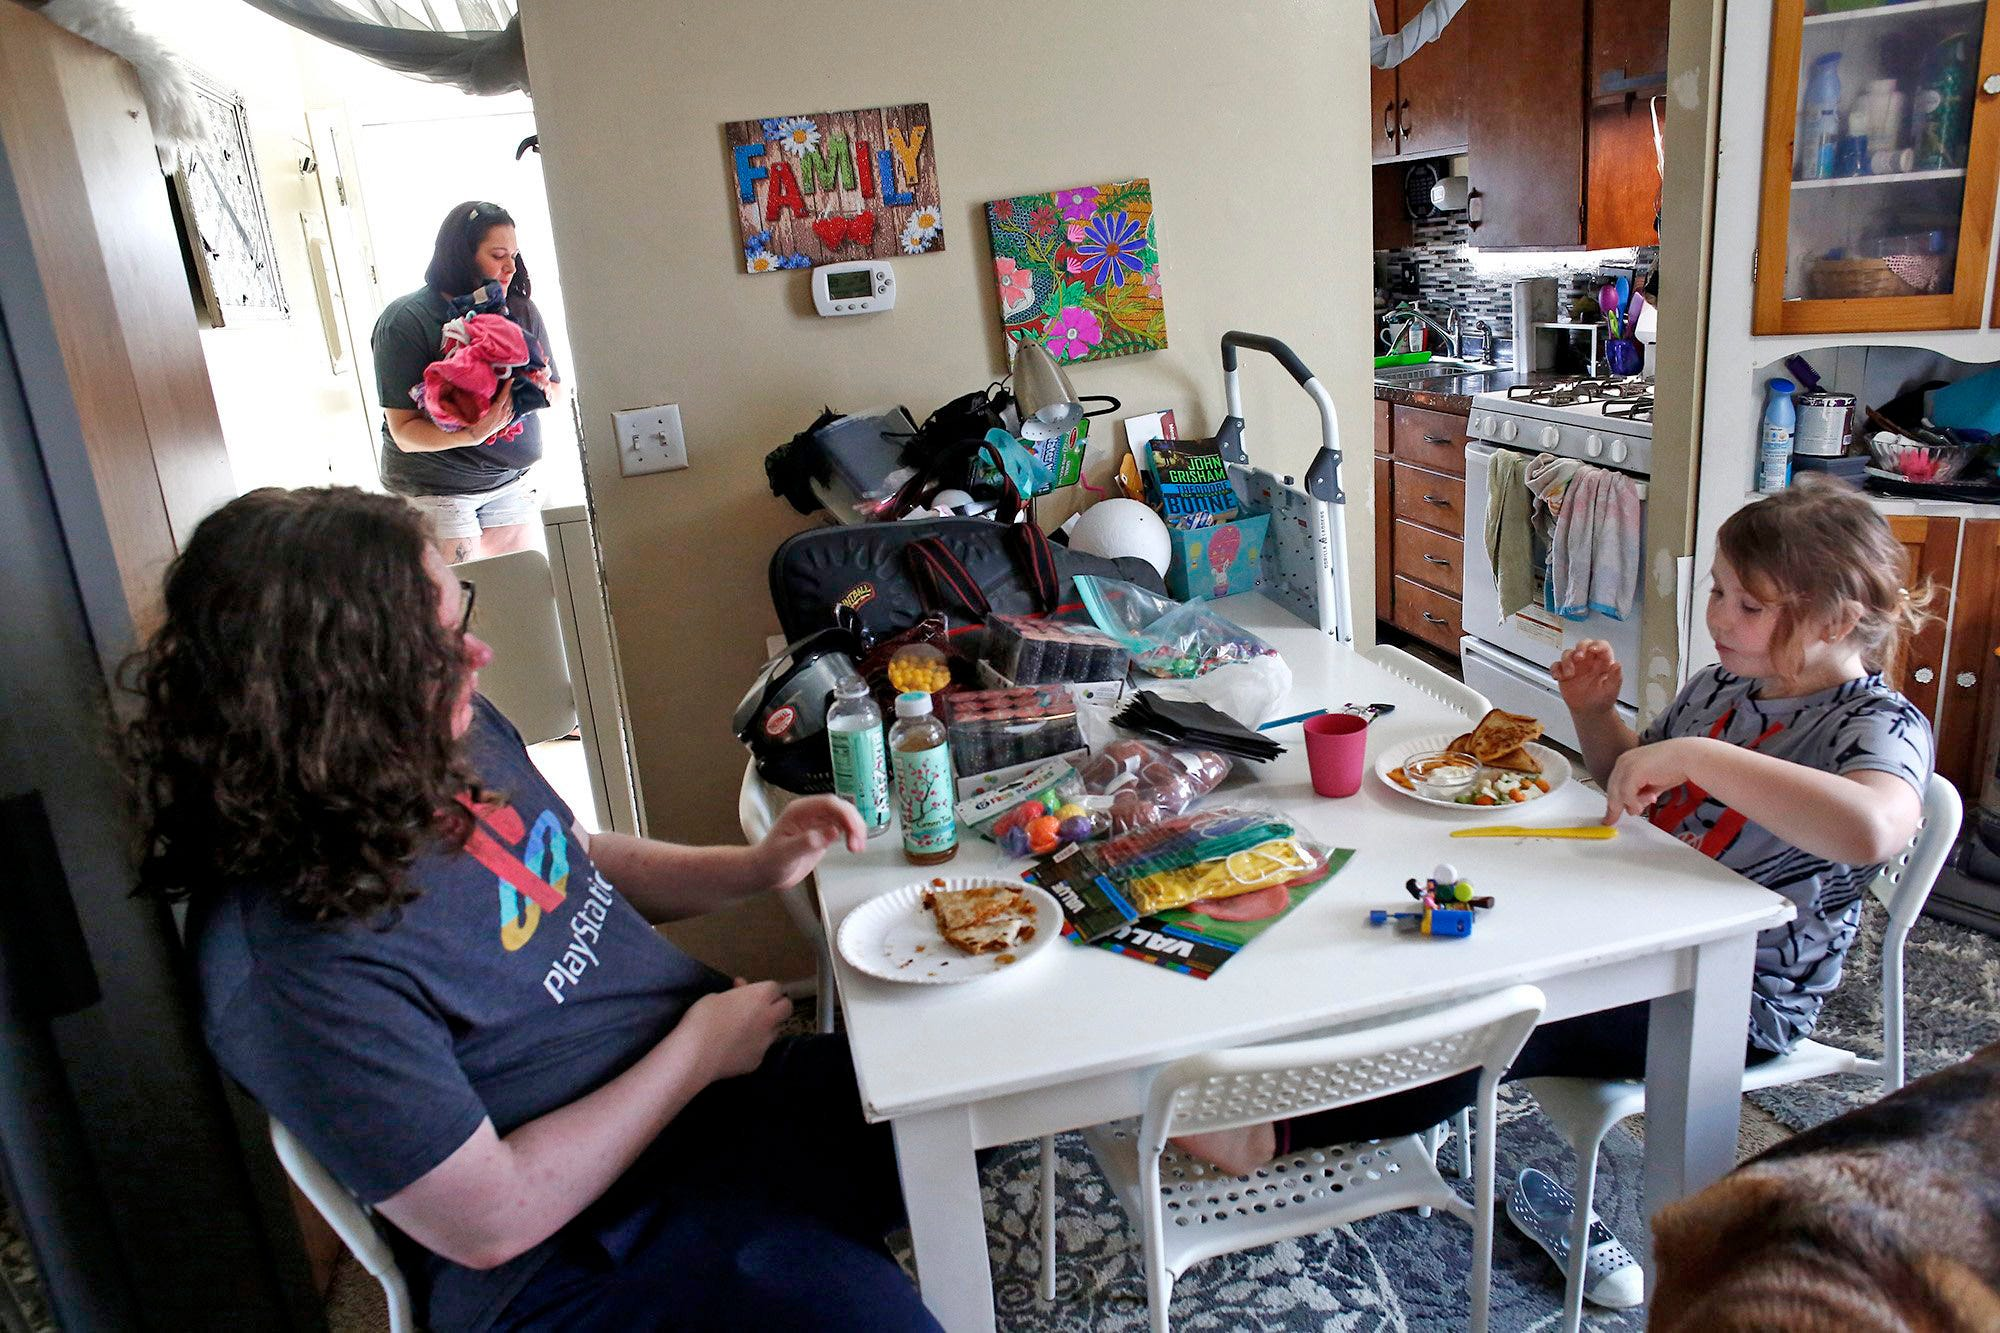 Sara Jucha puts laundry into the dryer as her children Kasey Burns, 15, left, and Lily Jucha, 8, eat lunch.